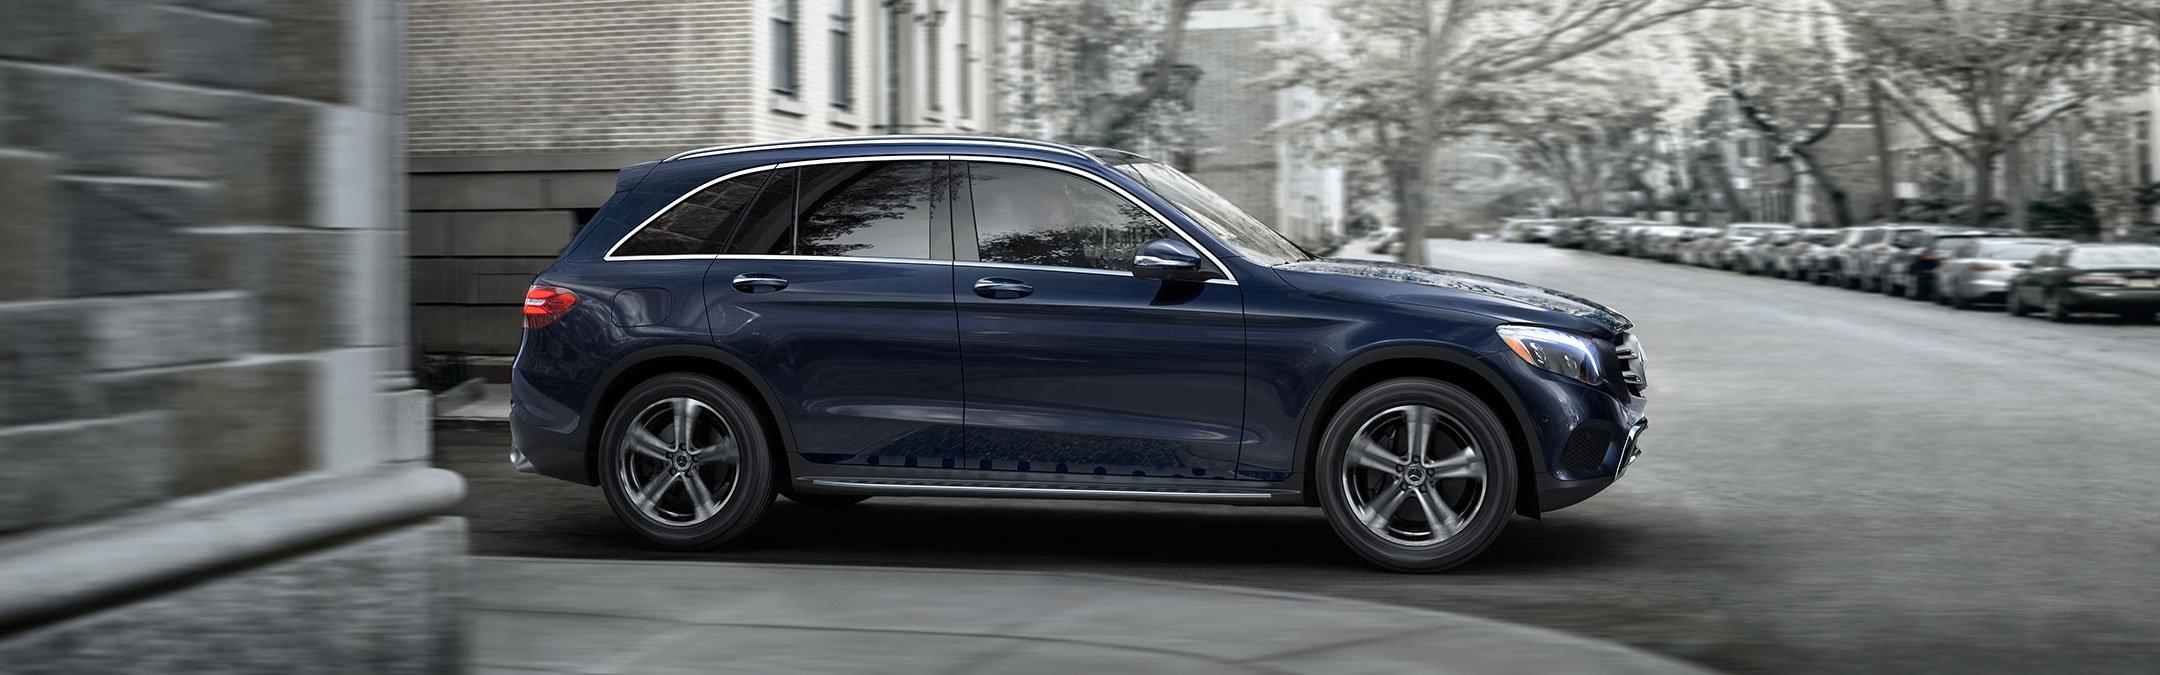 Design du VUS GLC 2018